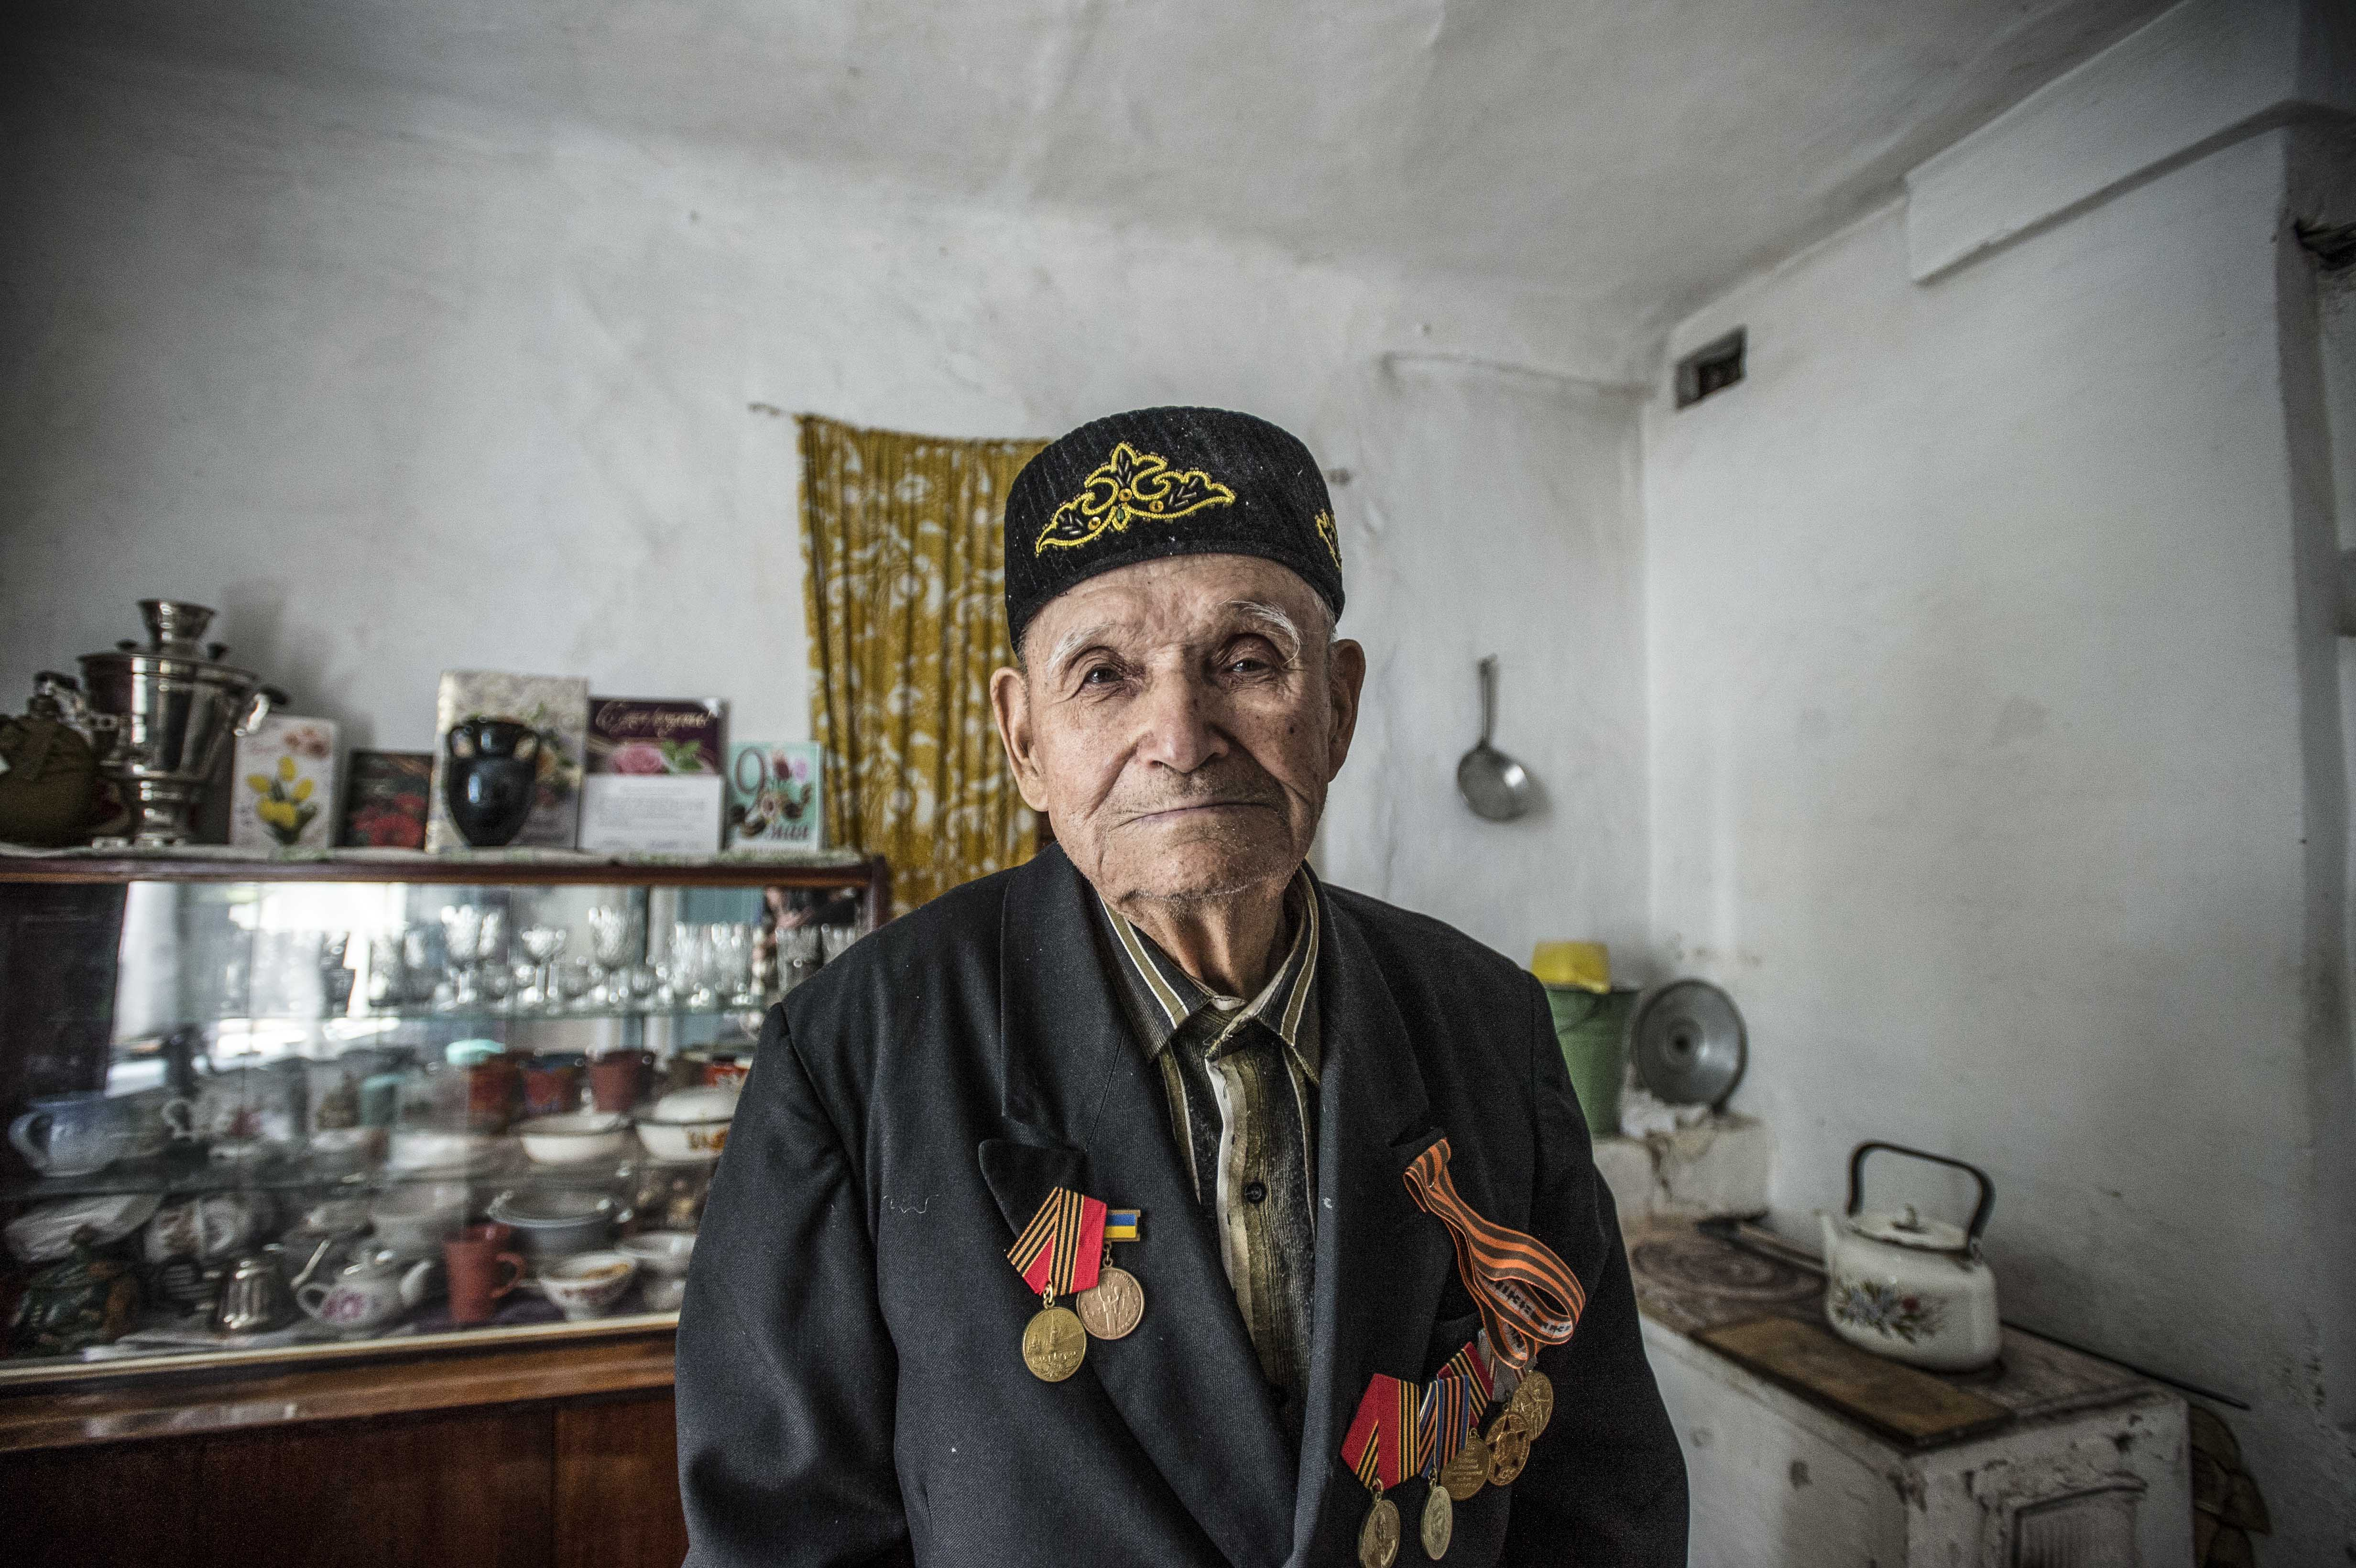 VETERANS OF THE CRIMEAN